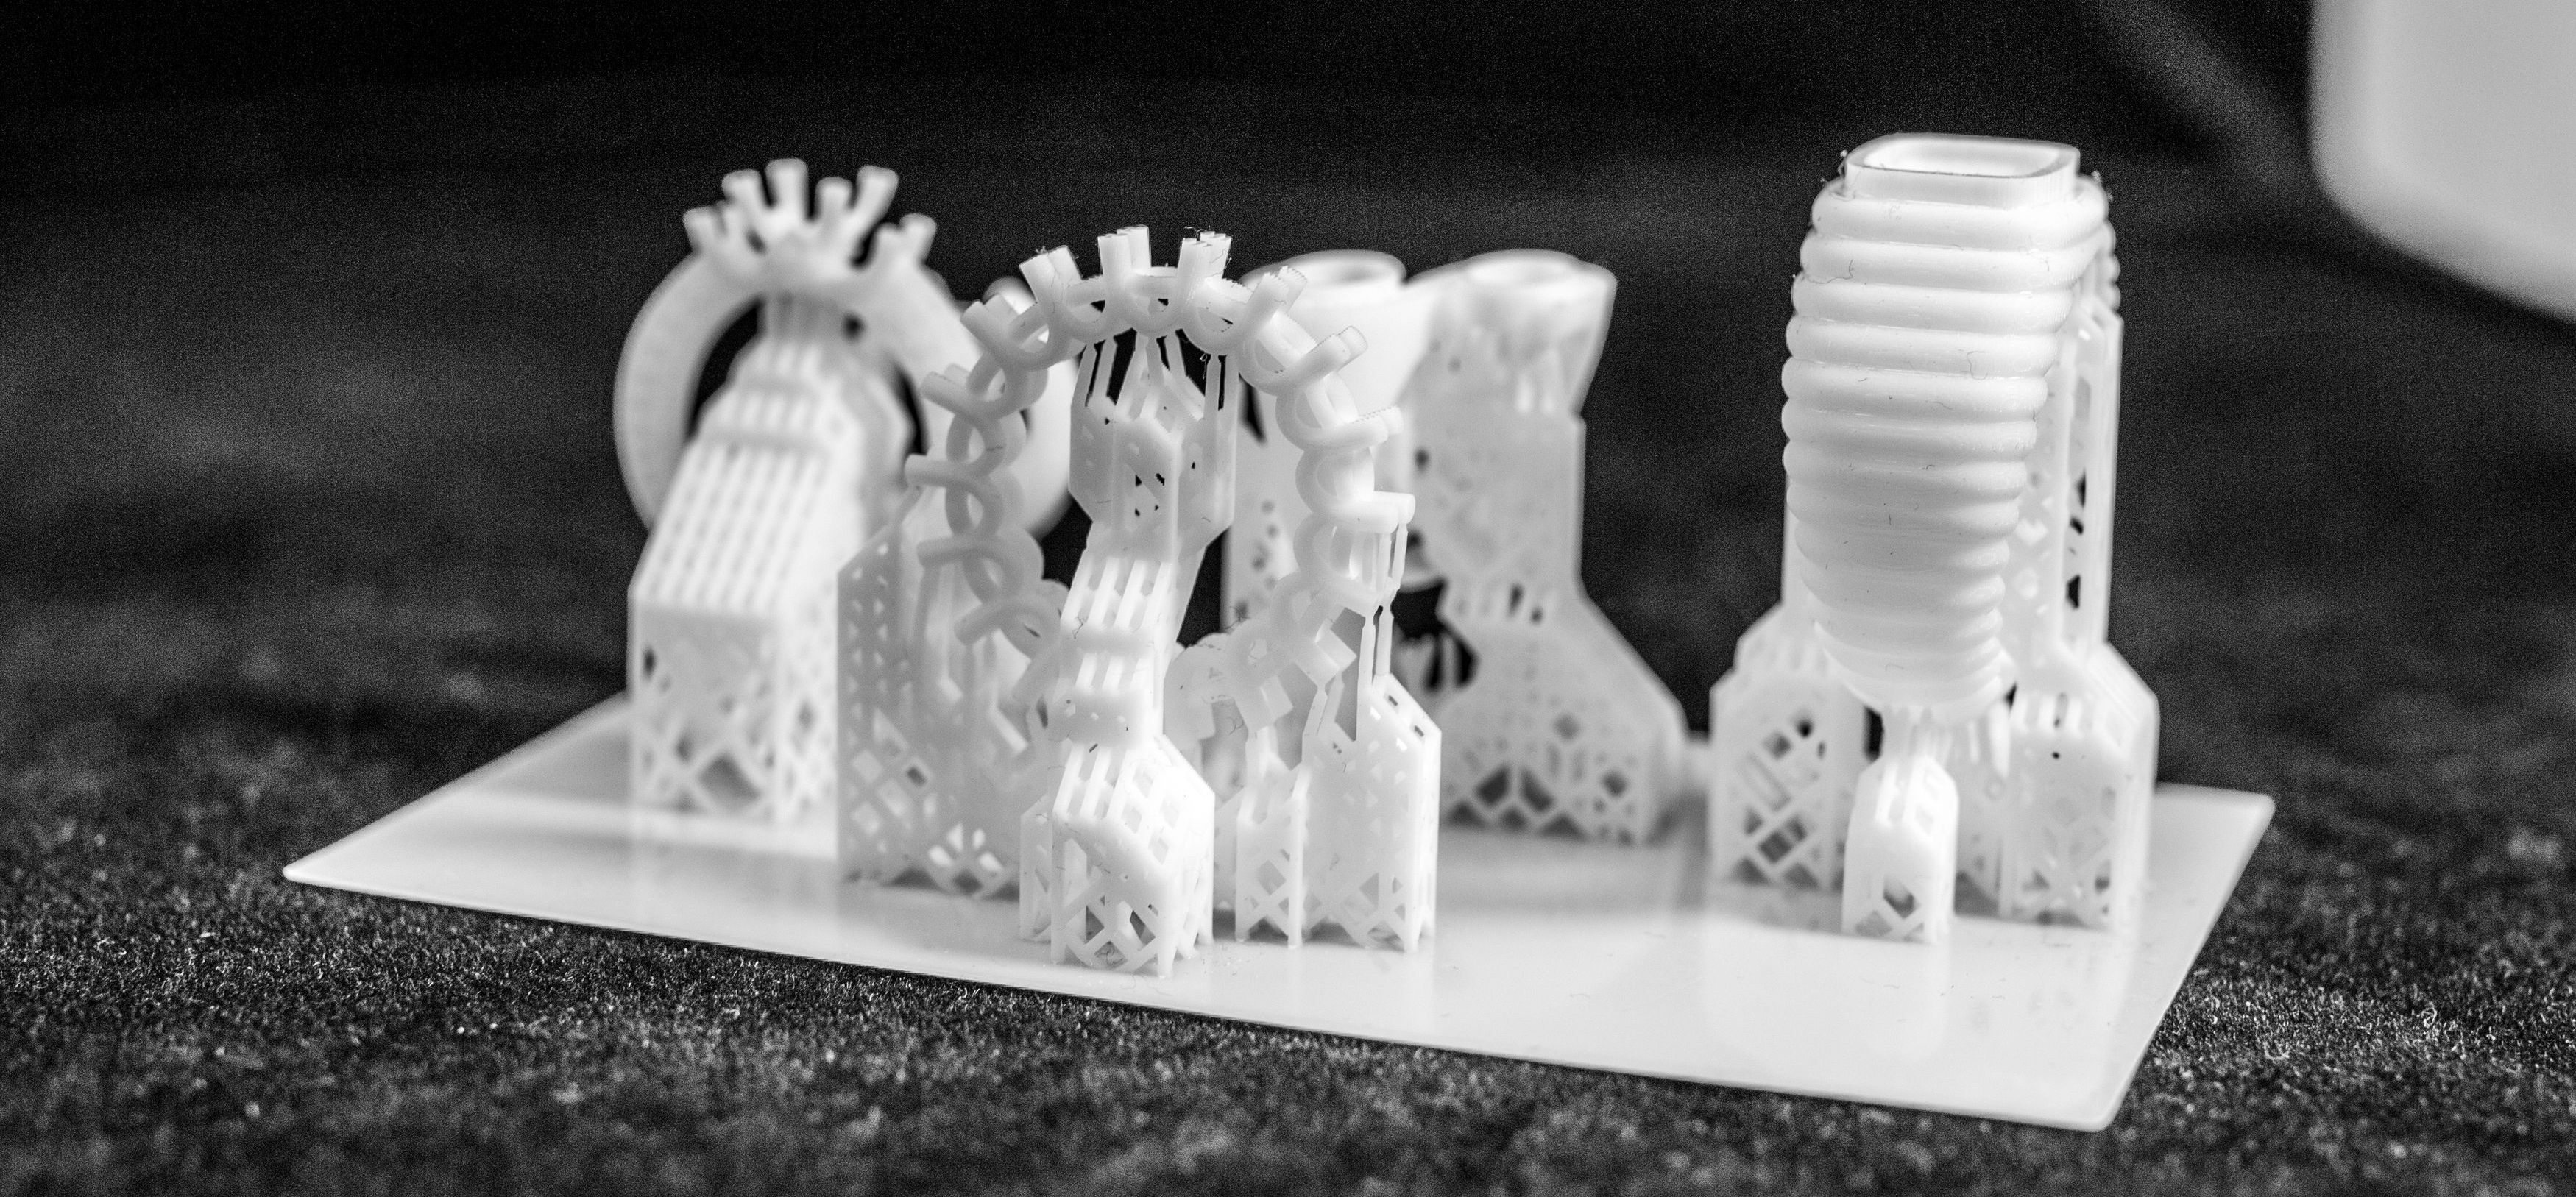 Addressing the Challenges of DLP and Bottom-Up 3D Printing